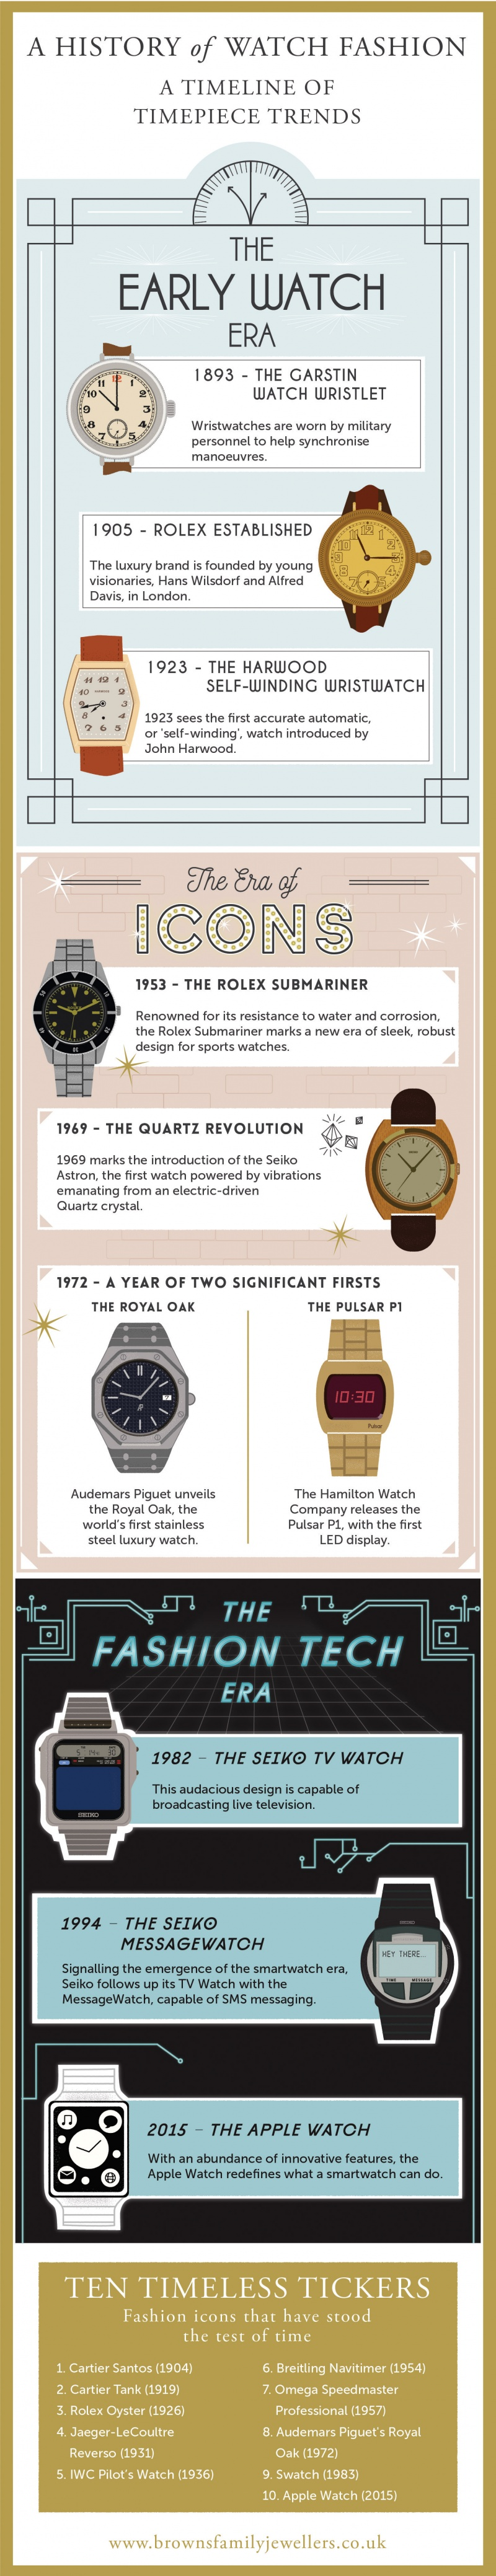 Watches, Watch History, Classic Watches, Watch fashion, Browns Family Jewellers, Cluse Watch, Rose Gold watch, Grey watch